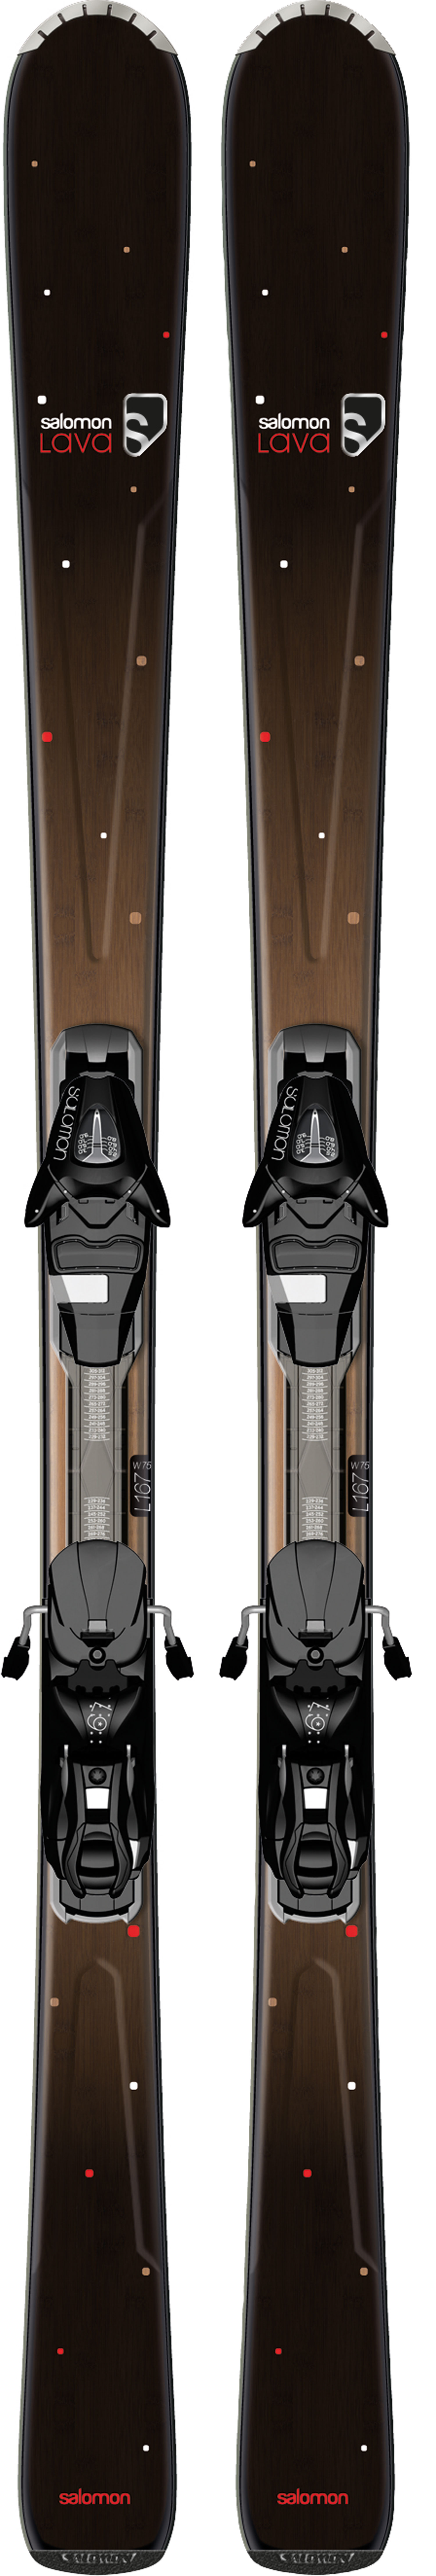 Ski Salomon Origins Lava Skis Black/Brown w/ L9 Bindings - $312.95